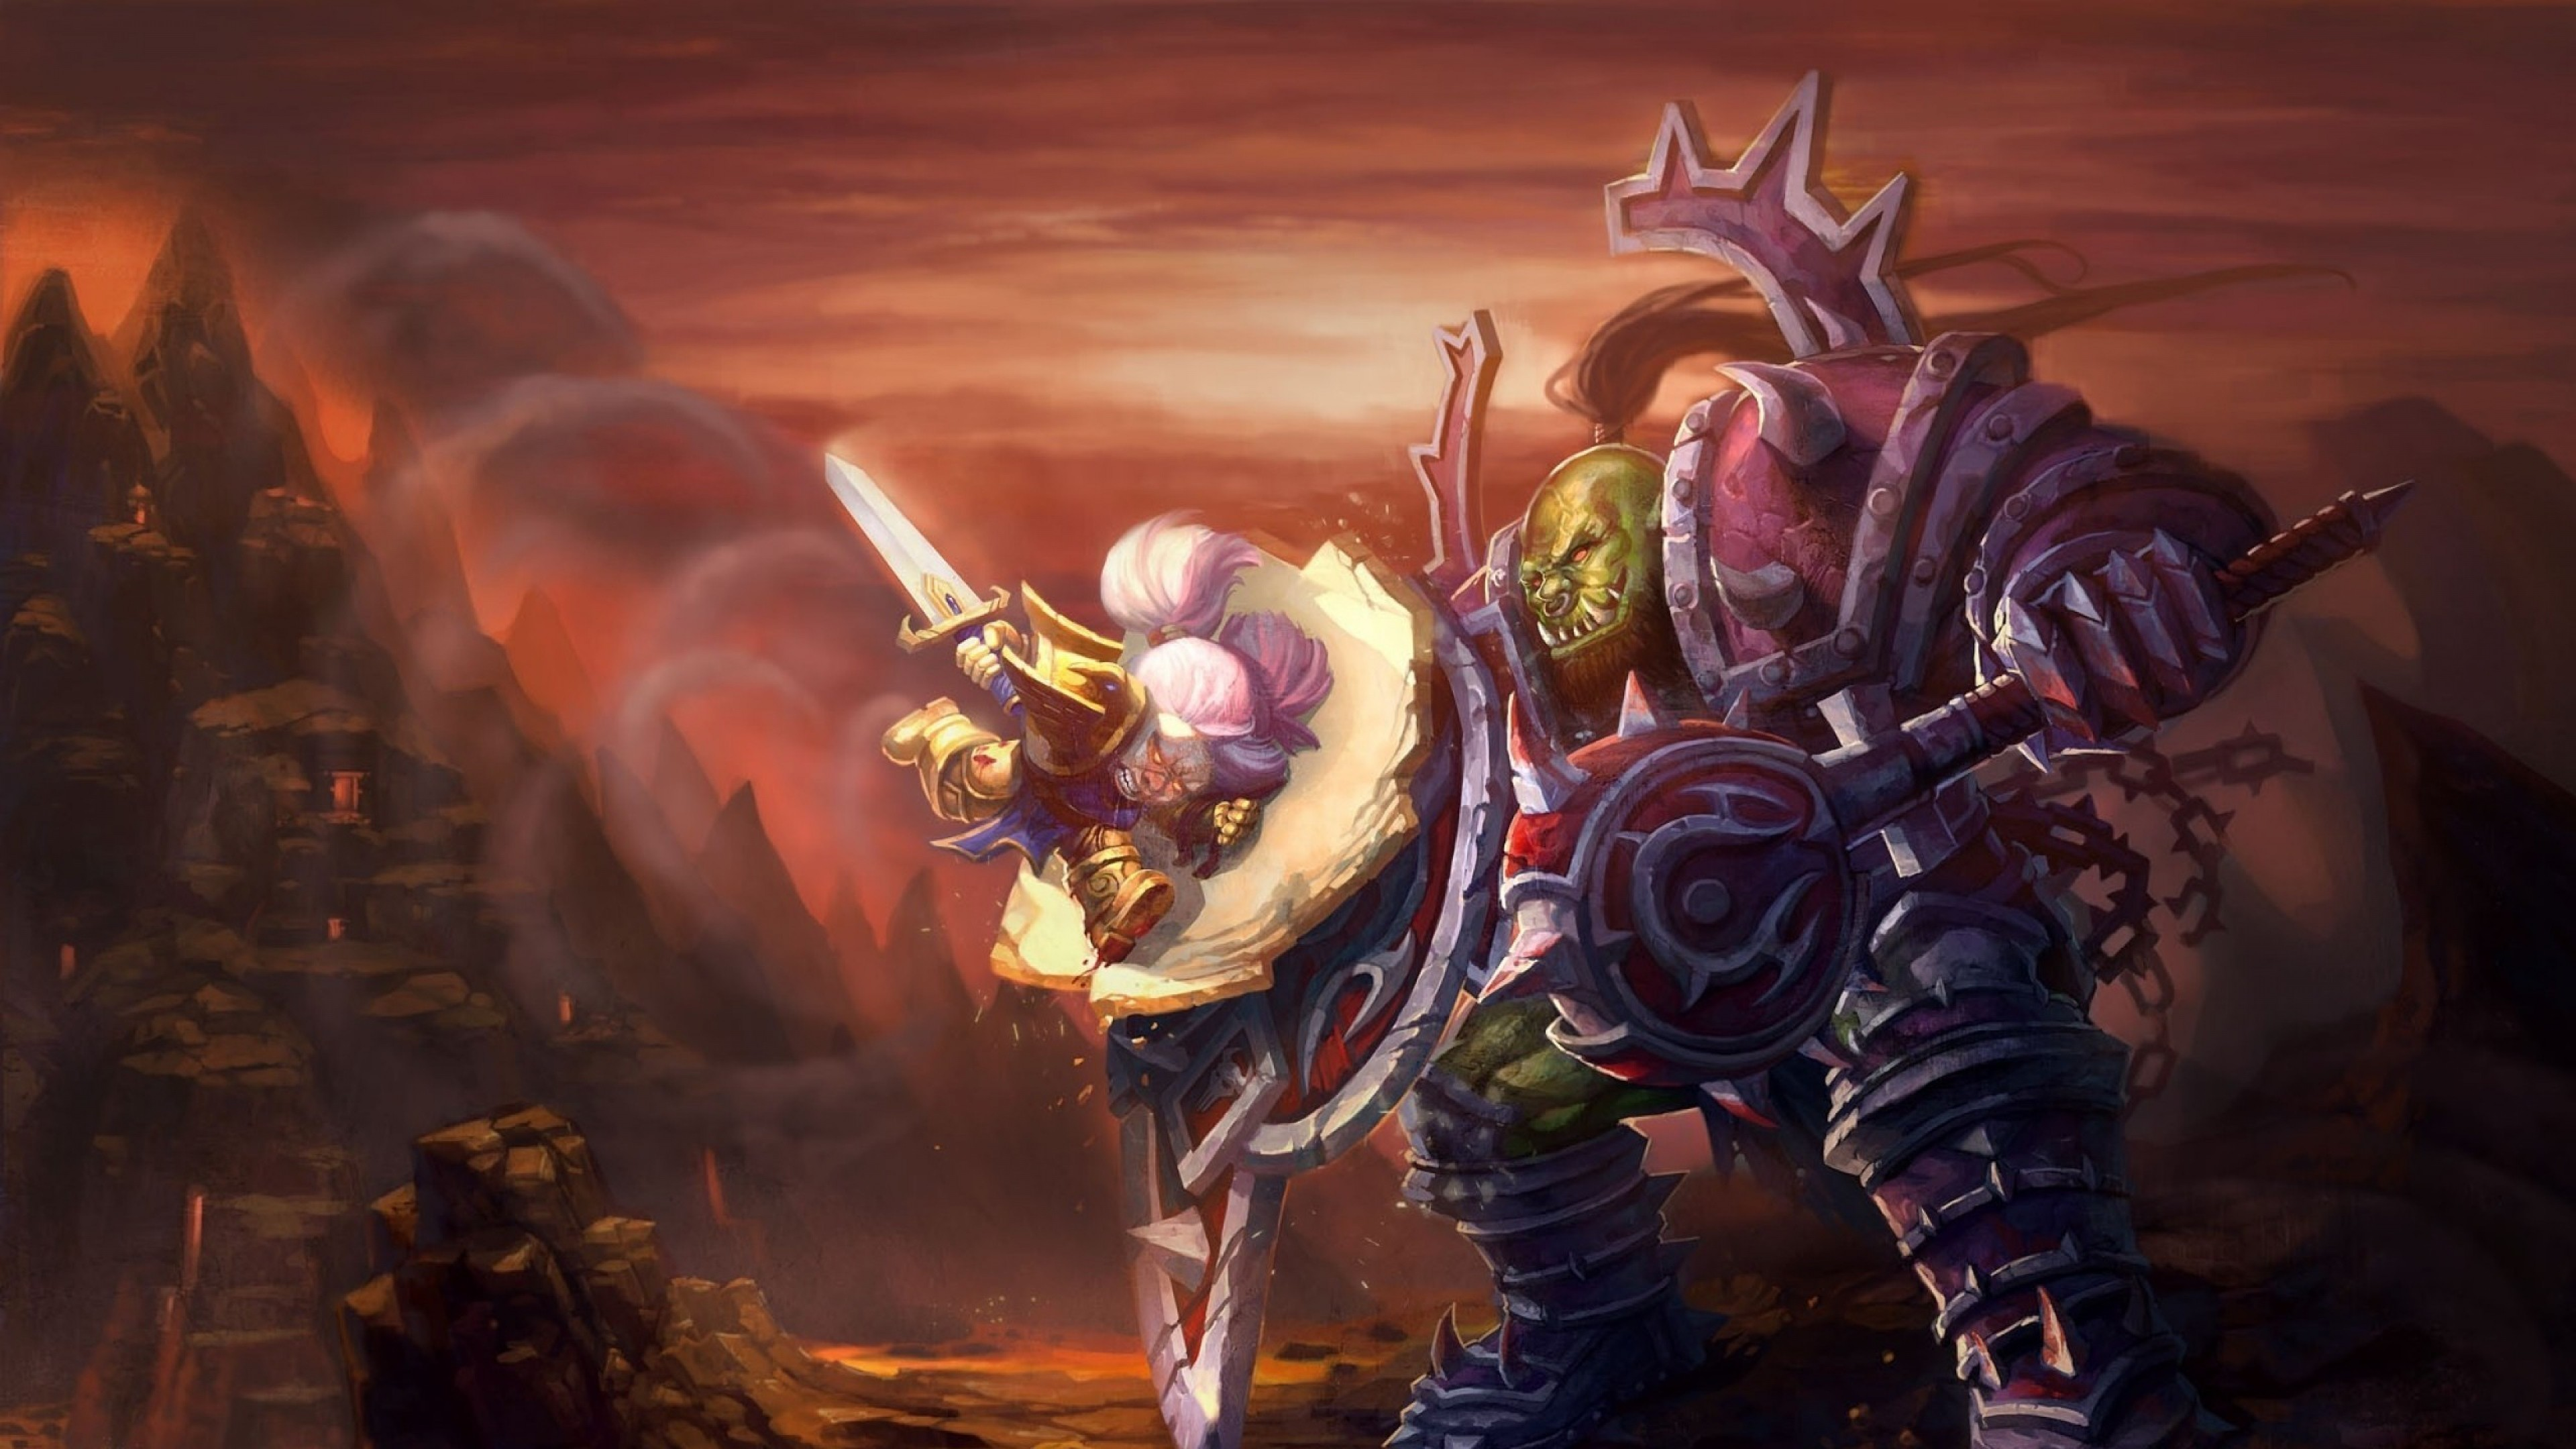 Preview wallpaper world of warcraft, wow, orc, warrior, dwarf, paladin  3840×2160